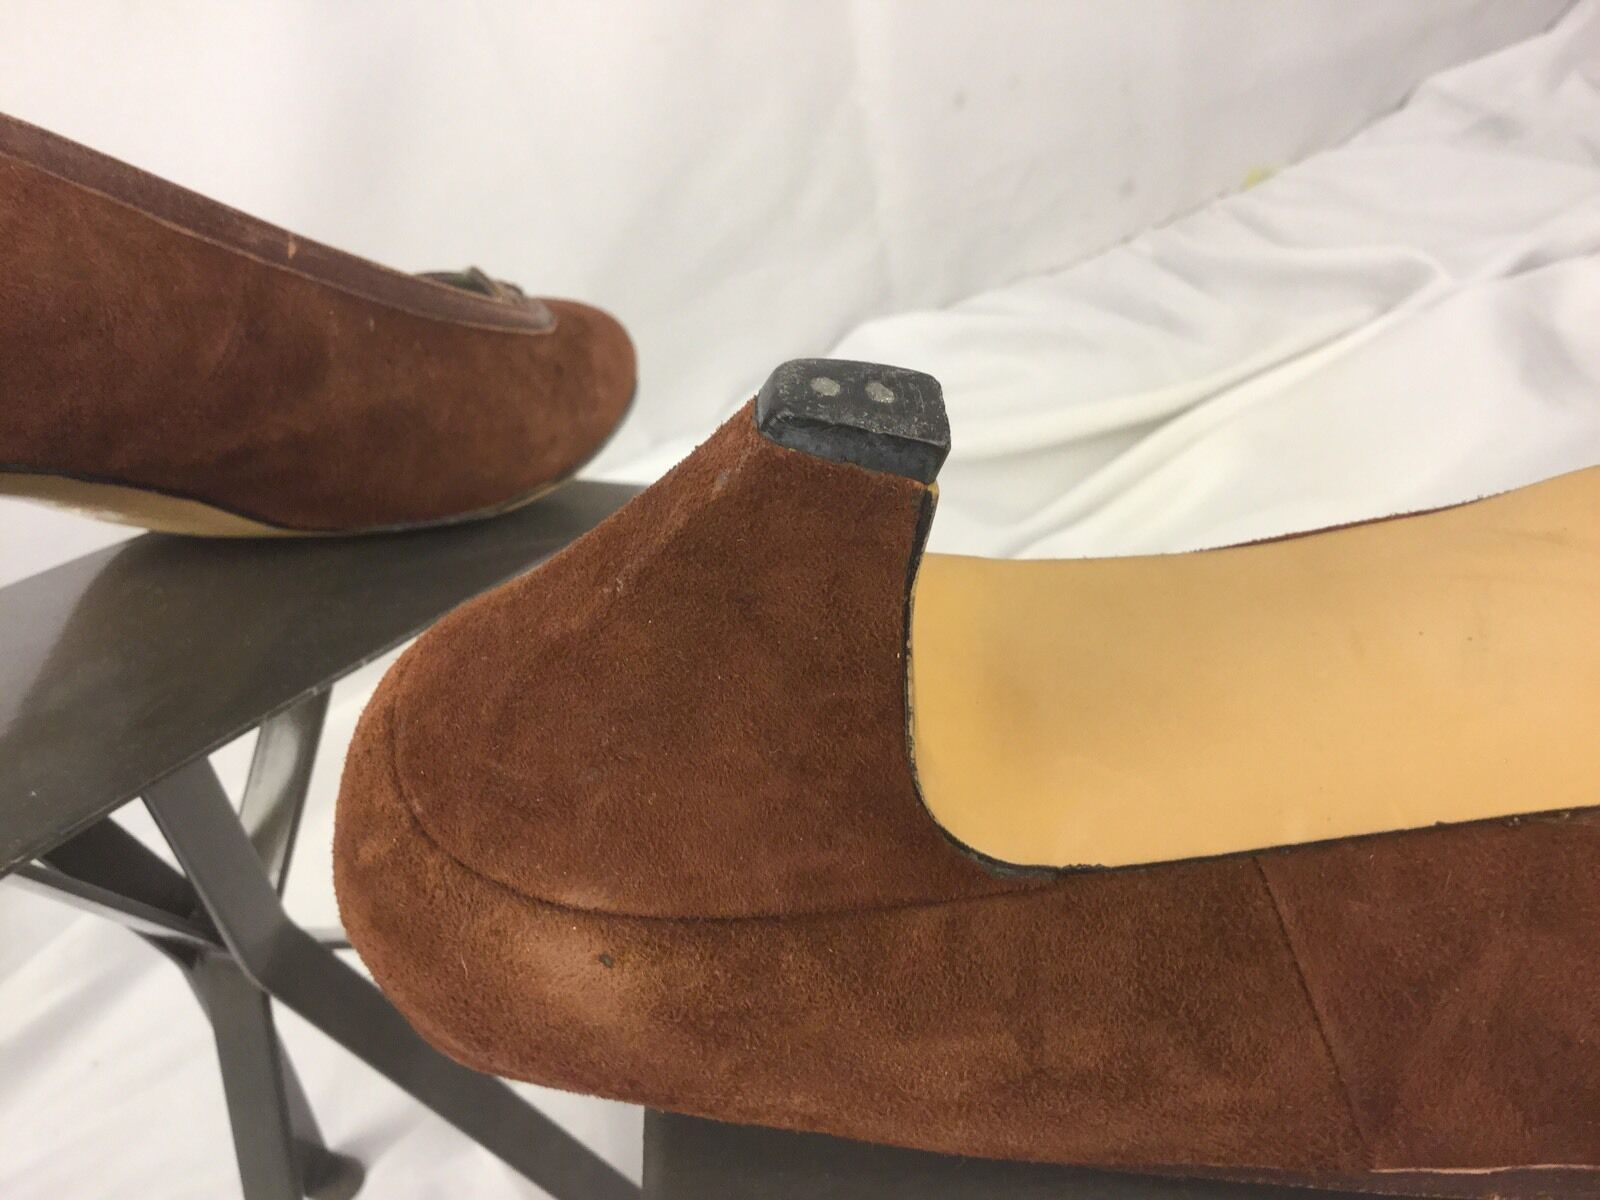 Pappagallo Dress Shoes Brown Pumps Size 9.5 N Brown Shoes Suede Made in Spain Mint YGI b95ce0